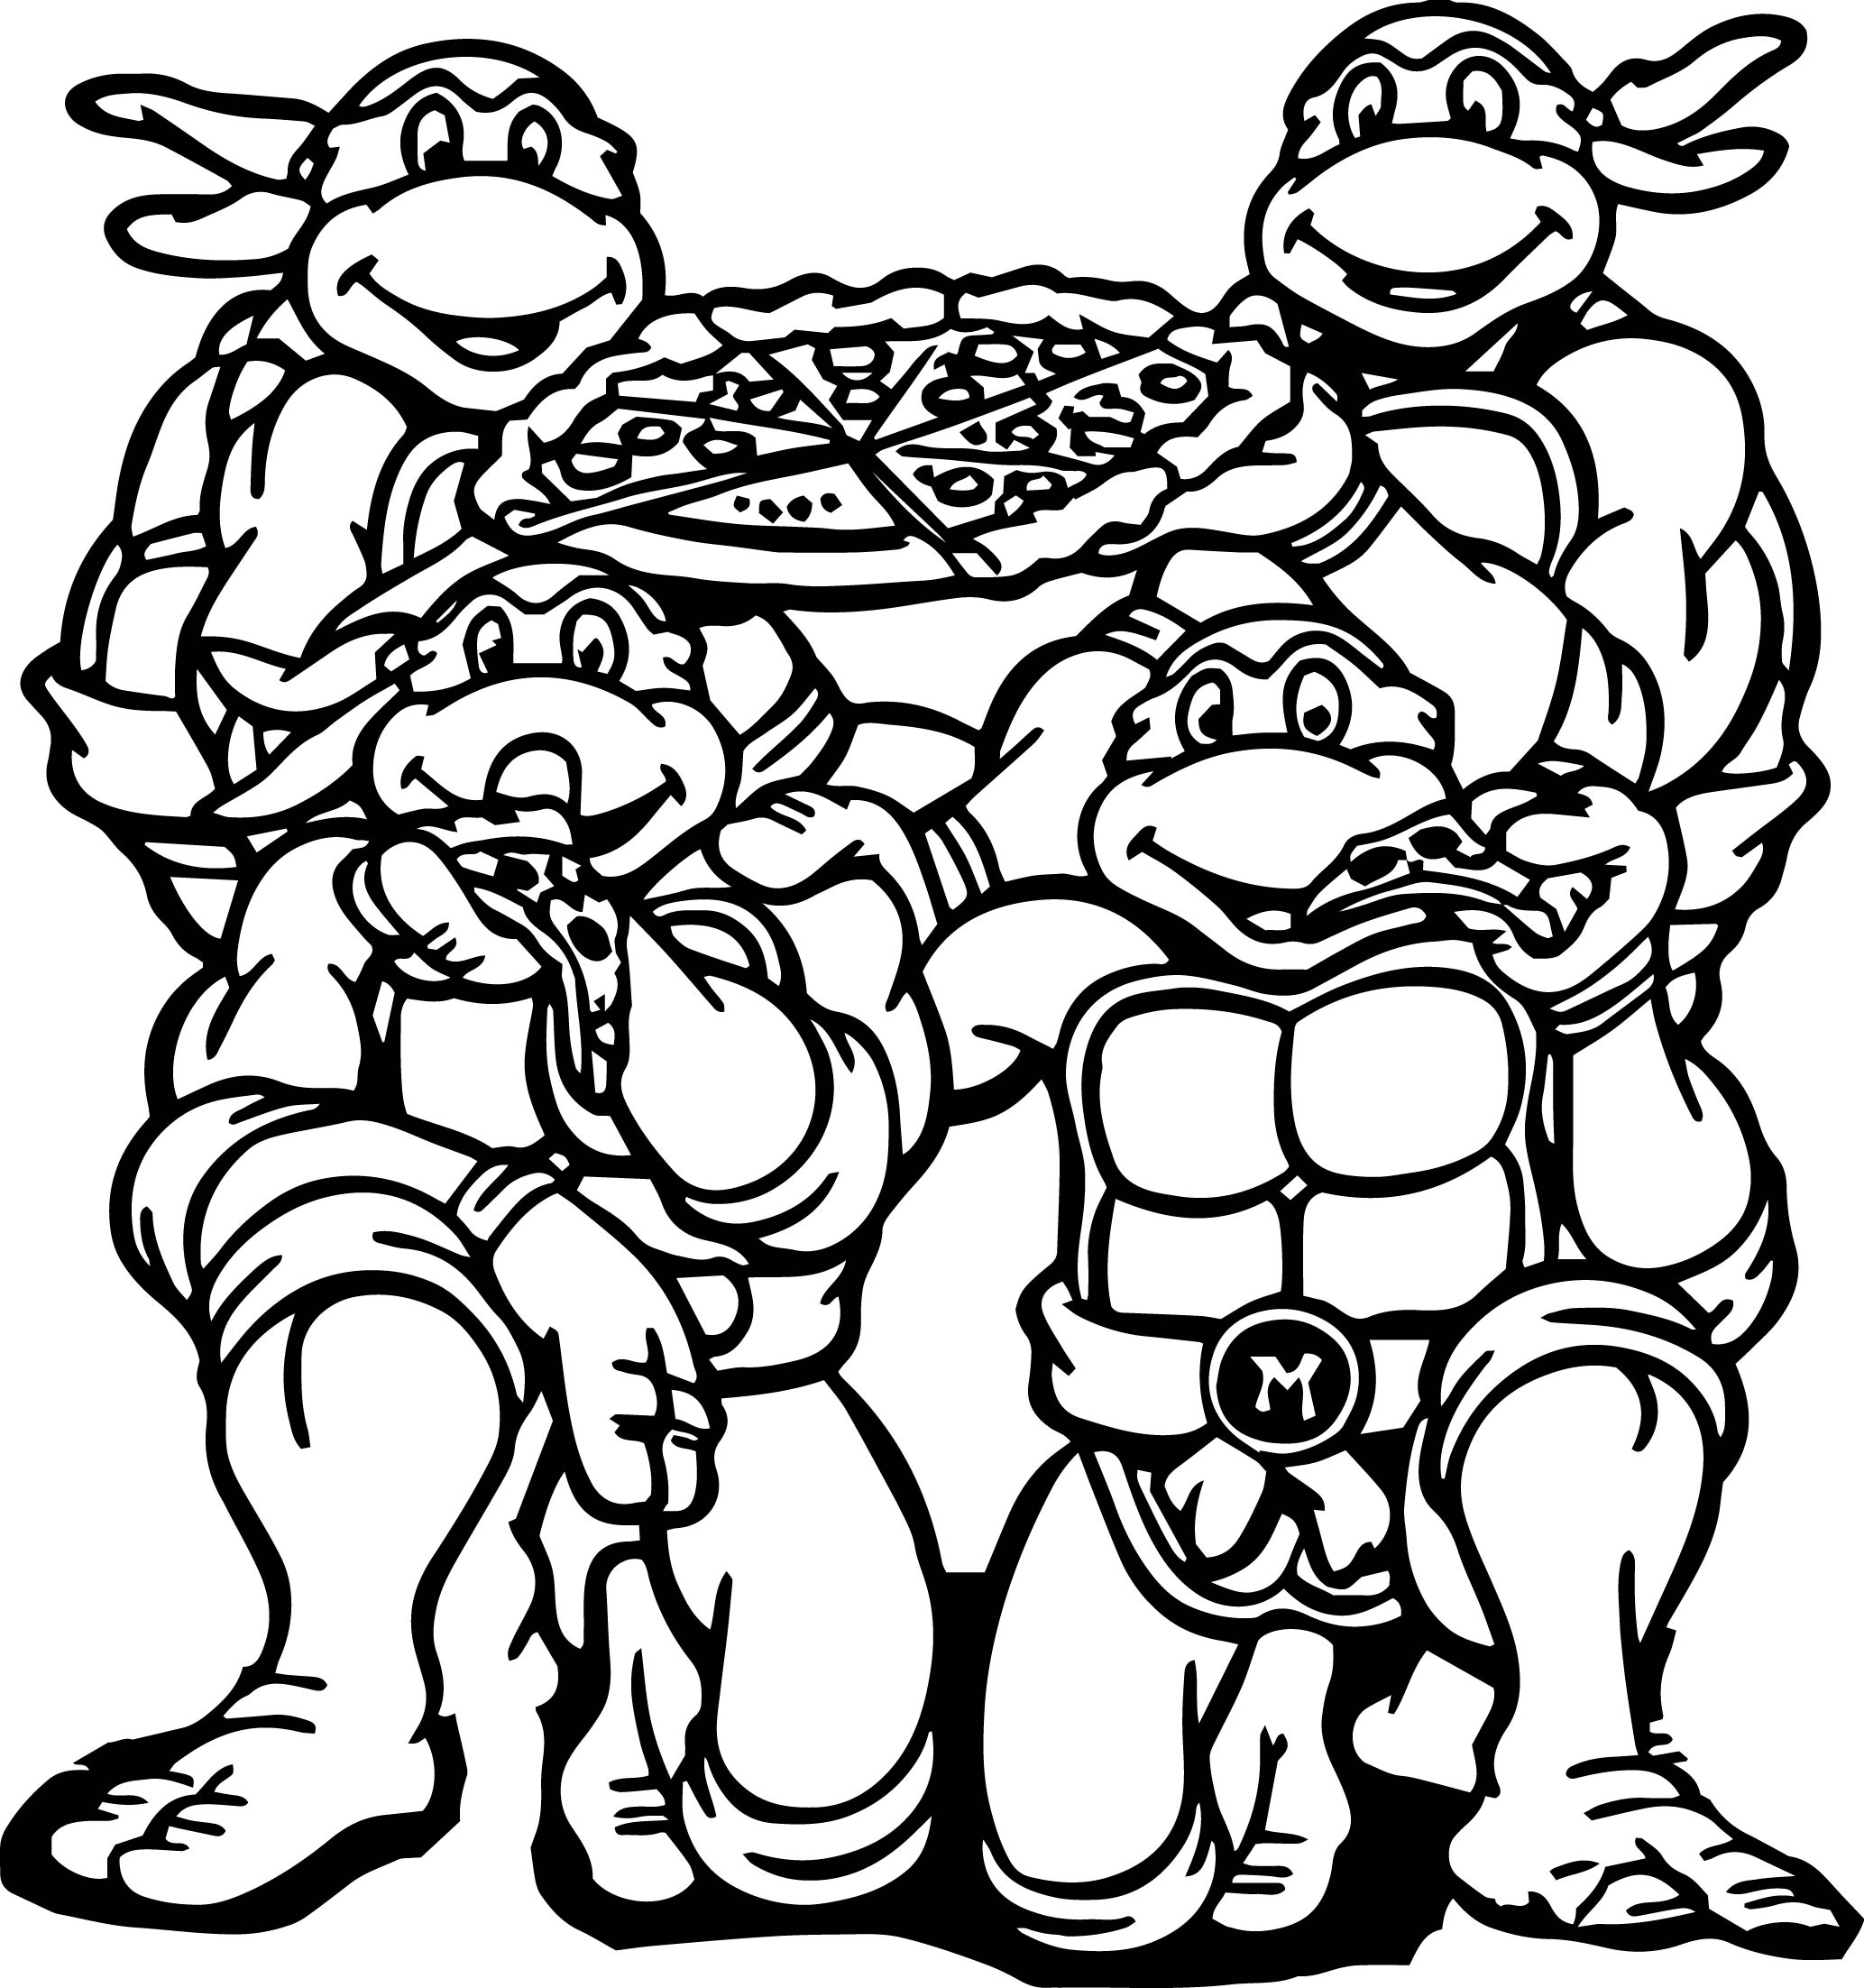 2067x2204 Ninja Turtles Coloring Pages Scott Fay Turtle Coloring Page